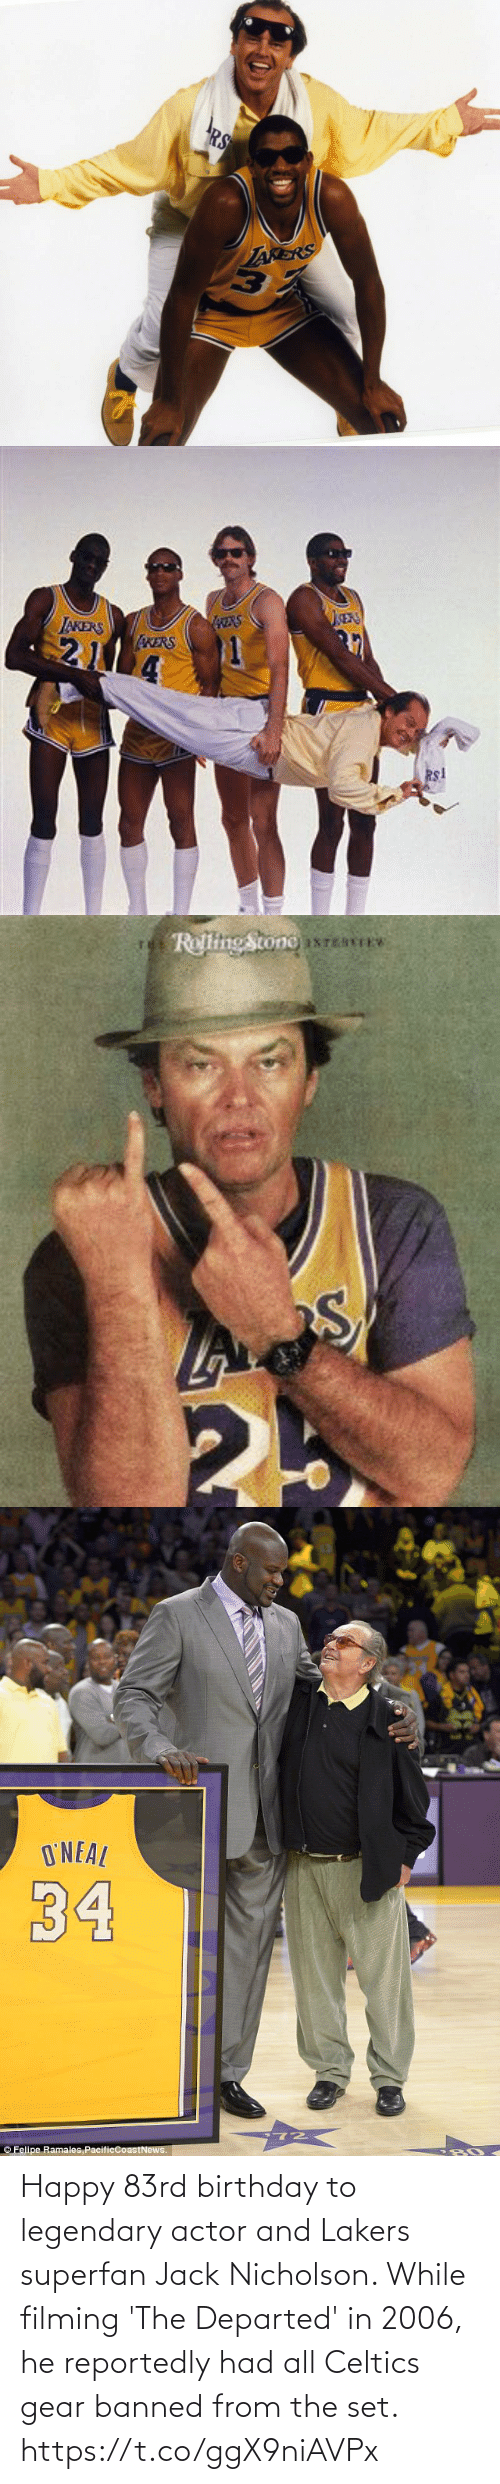 Jack Nicholson: Happy 83rd birthday to legendary actor and Lakers superfan Jack Nicholson.   While filming 'The Departed' in 2006, he reportedly had all Celtics gear banned from the set. https://t.co/ggX9niAVPx